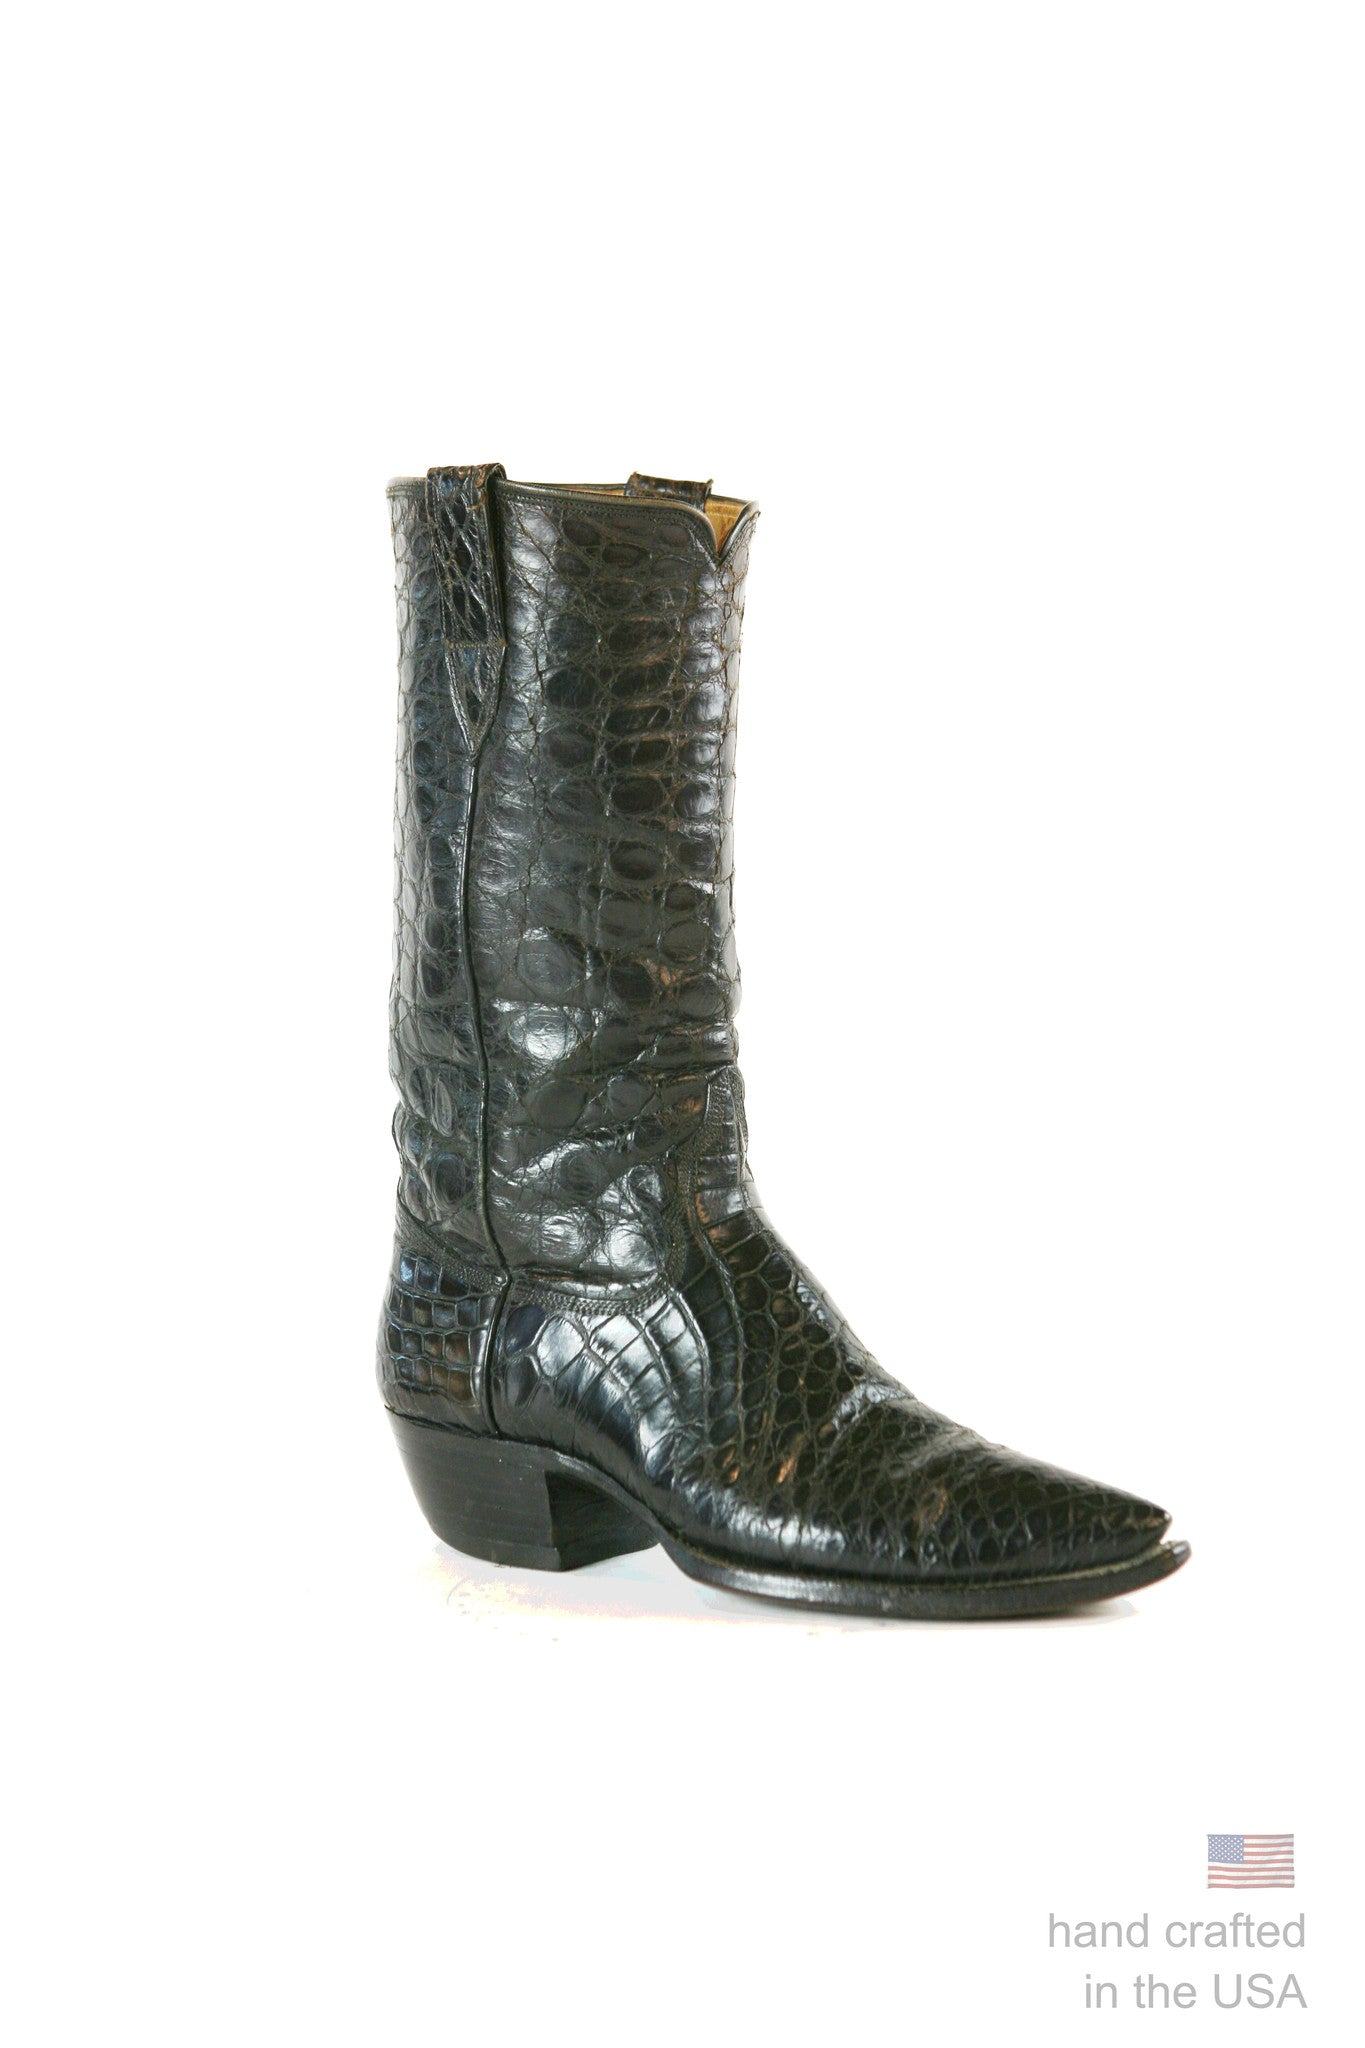 The Las Vegas - American Alligator Custom Cowboy Boot: 26B